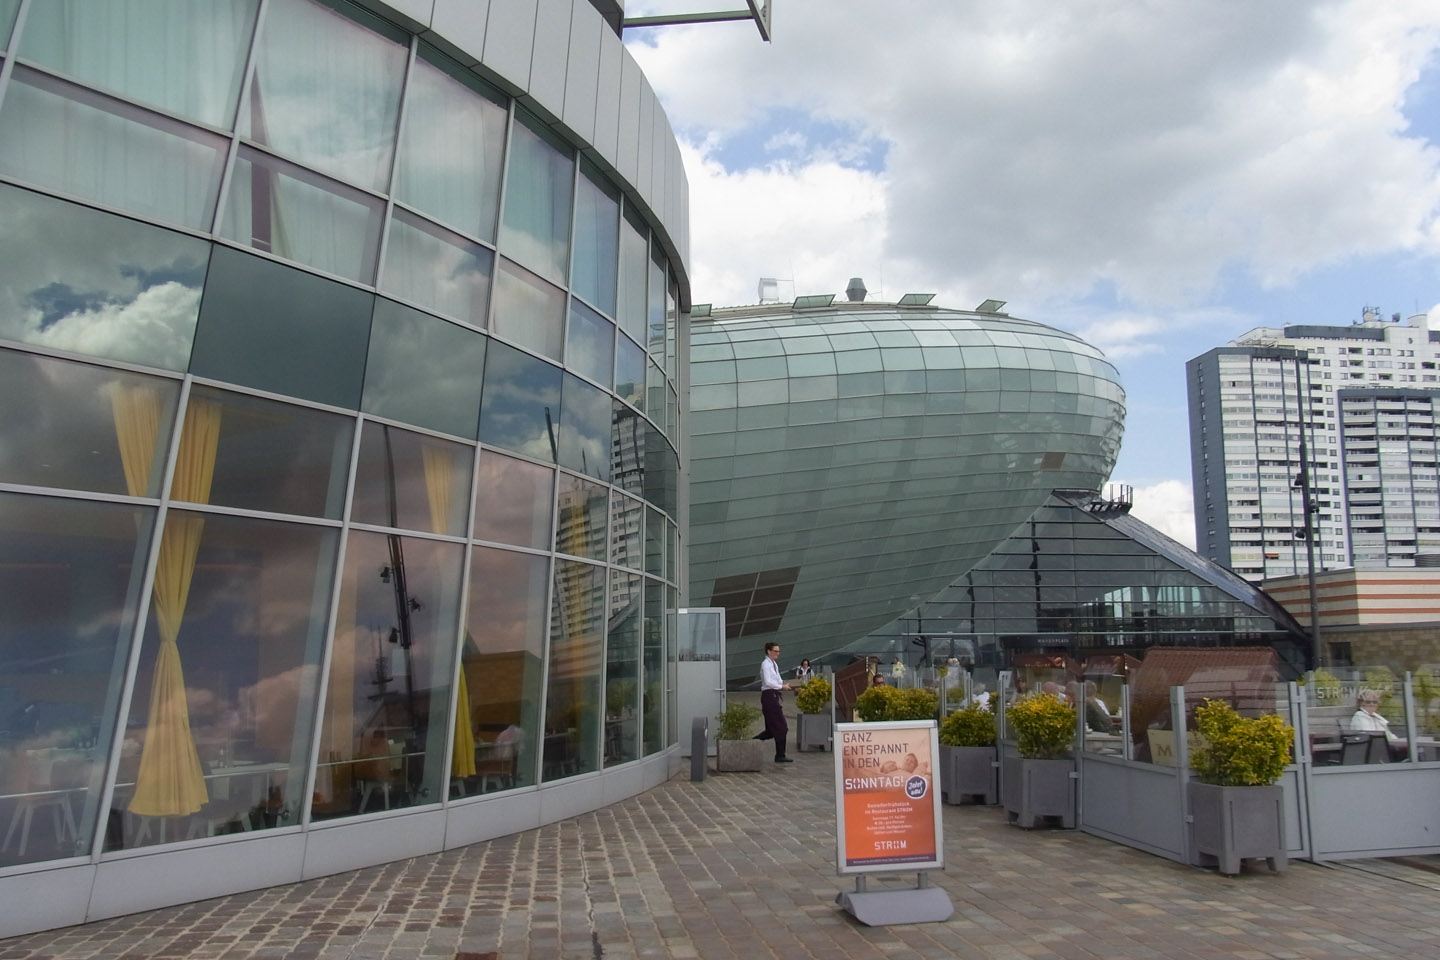 Klimahaus Bremerhaven - a fascinating museum following life on the 8th degree longitude